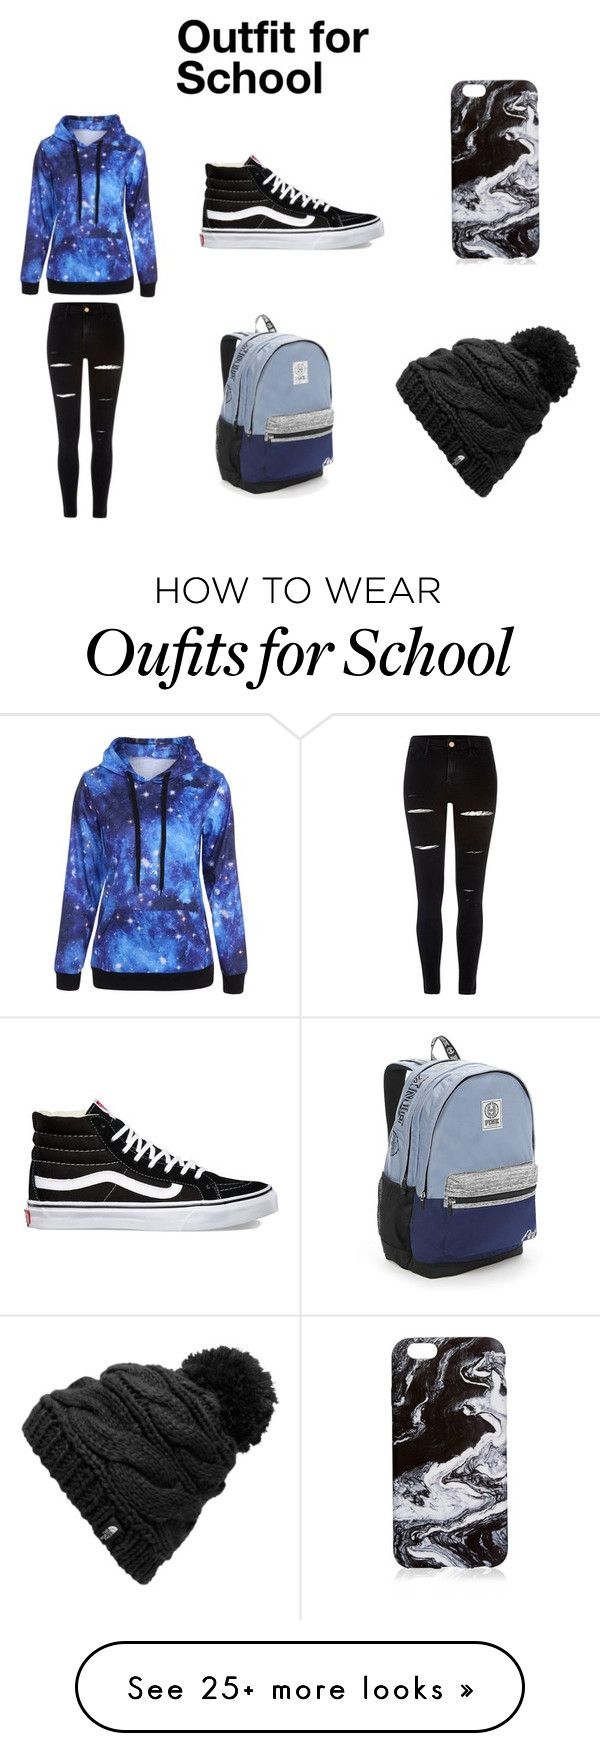 """Outfit for School"" by ava-josephine on Polyvore featuring River Island, Vans, Victoria's Secret and The North Face"